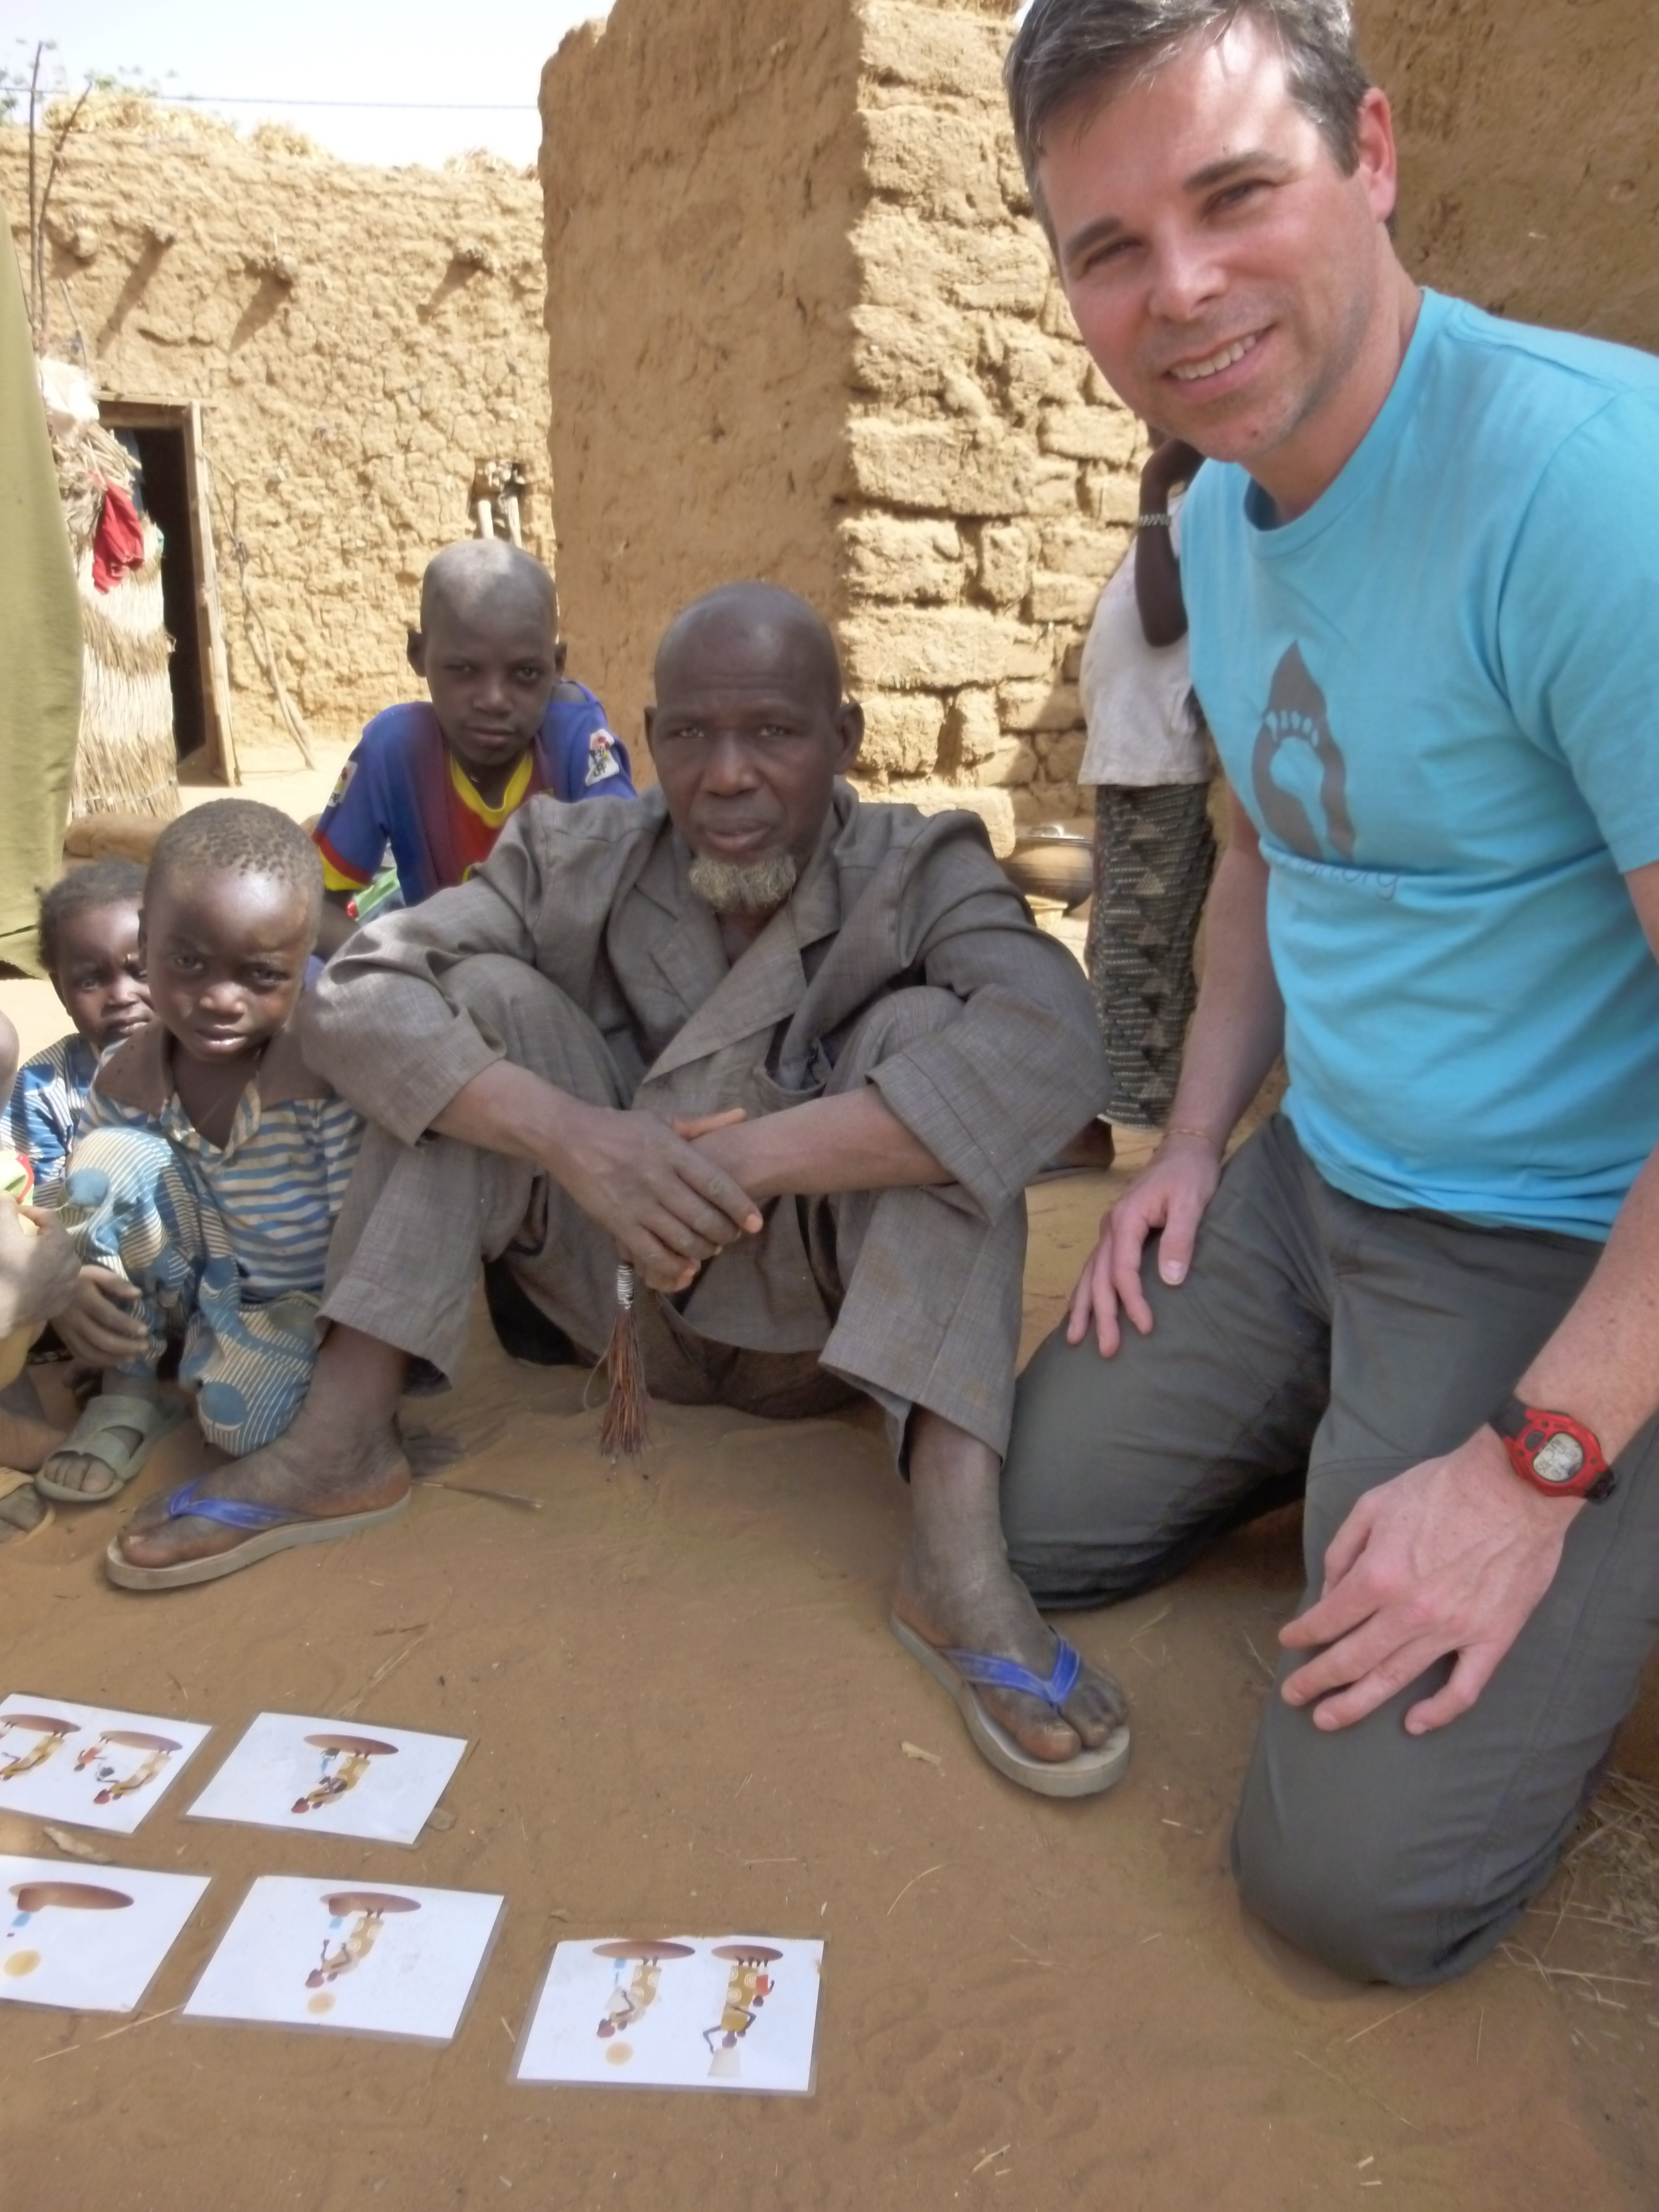 Testing the design of newly created water education materials with a man and his sons in the village of Latta.